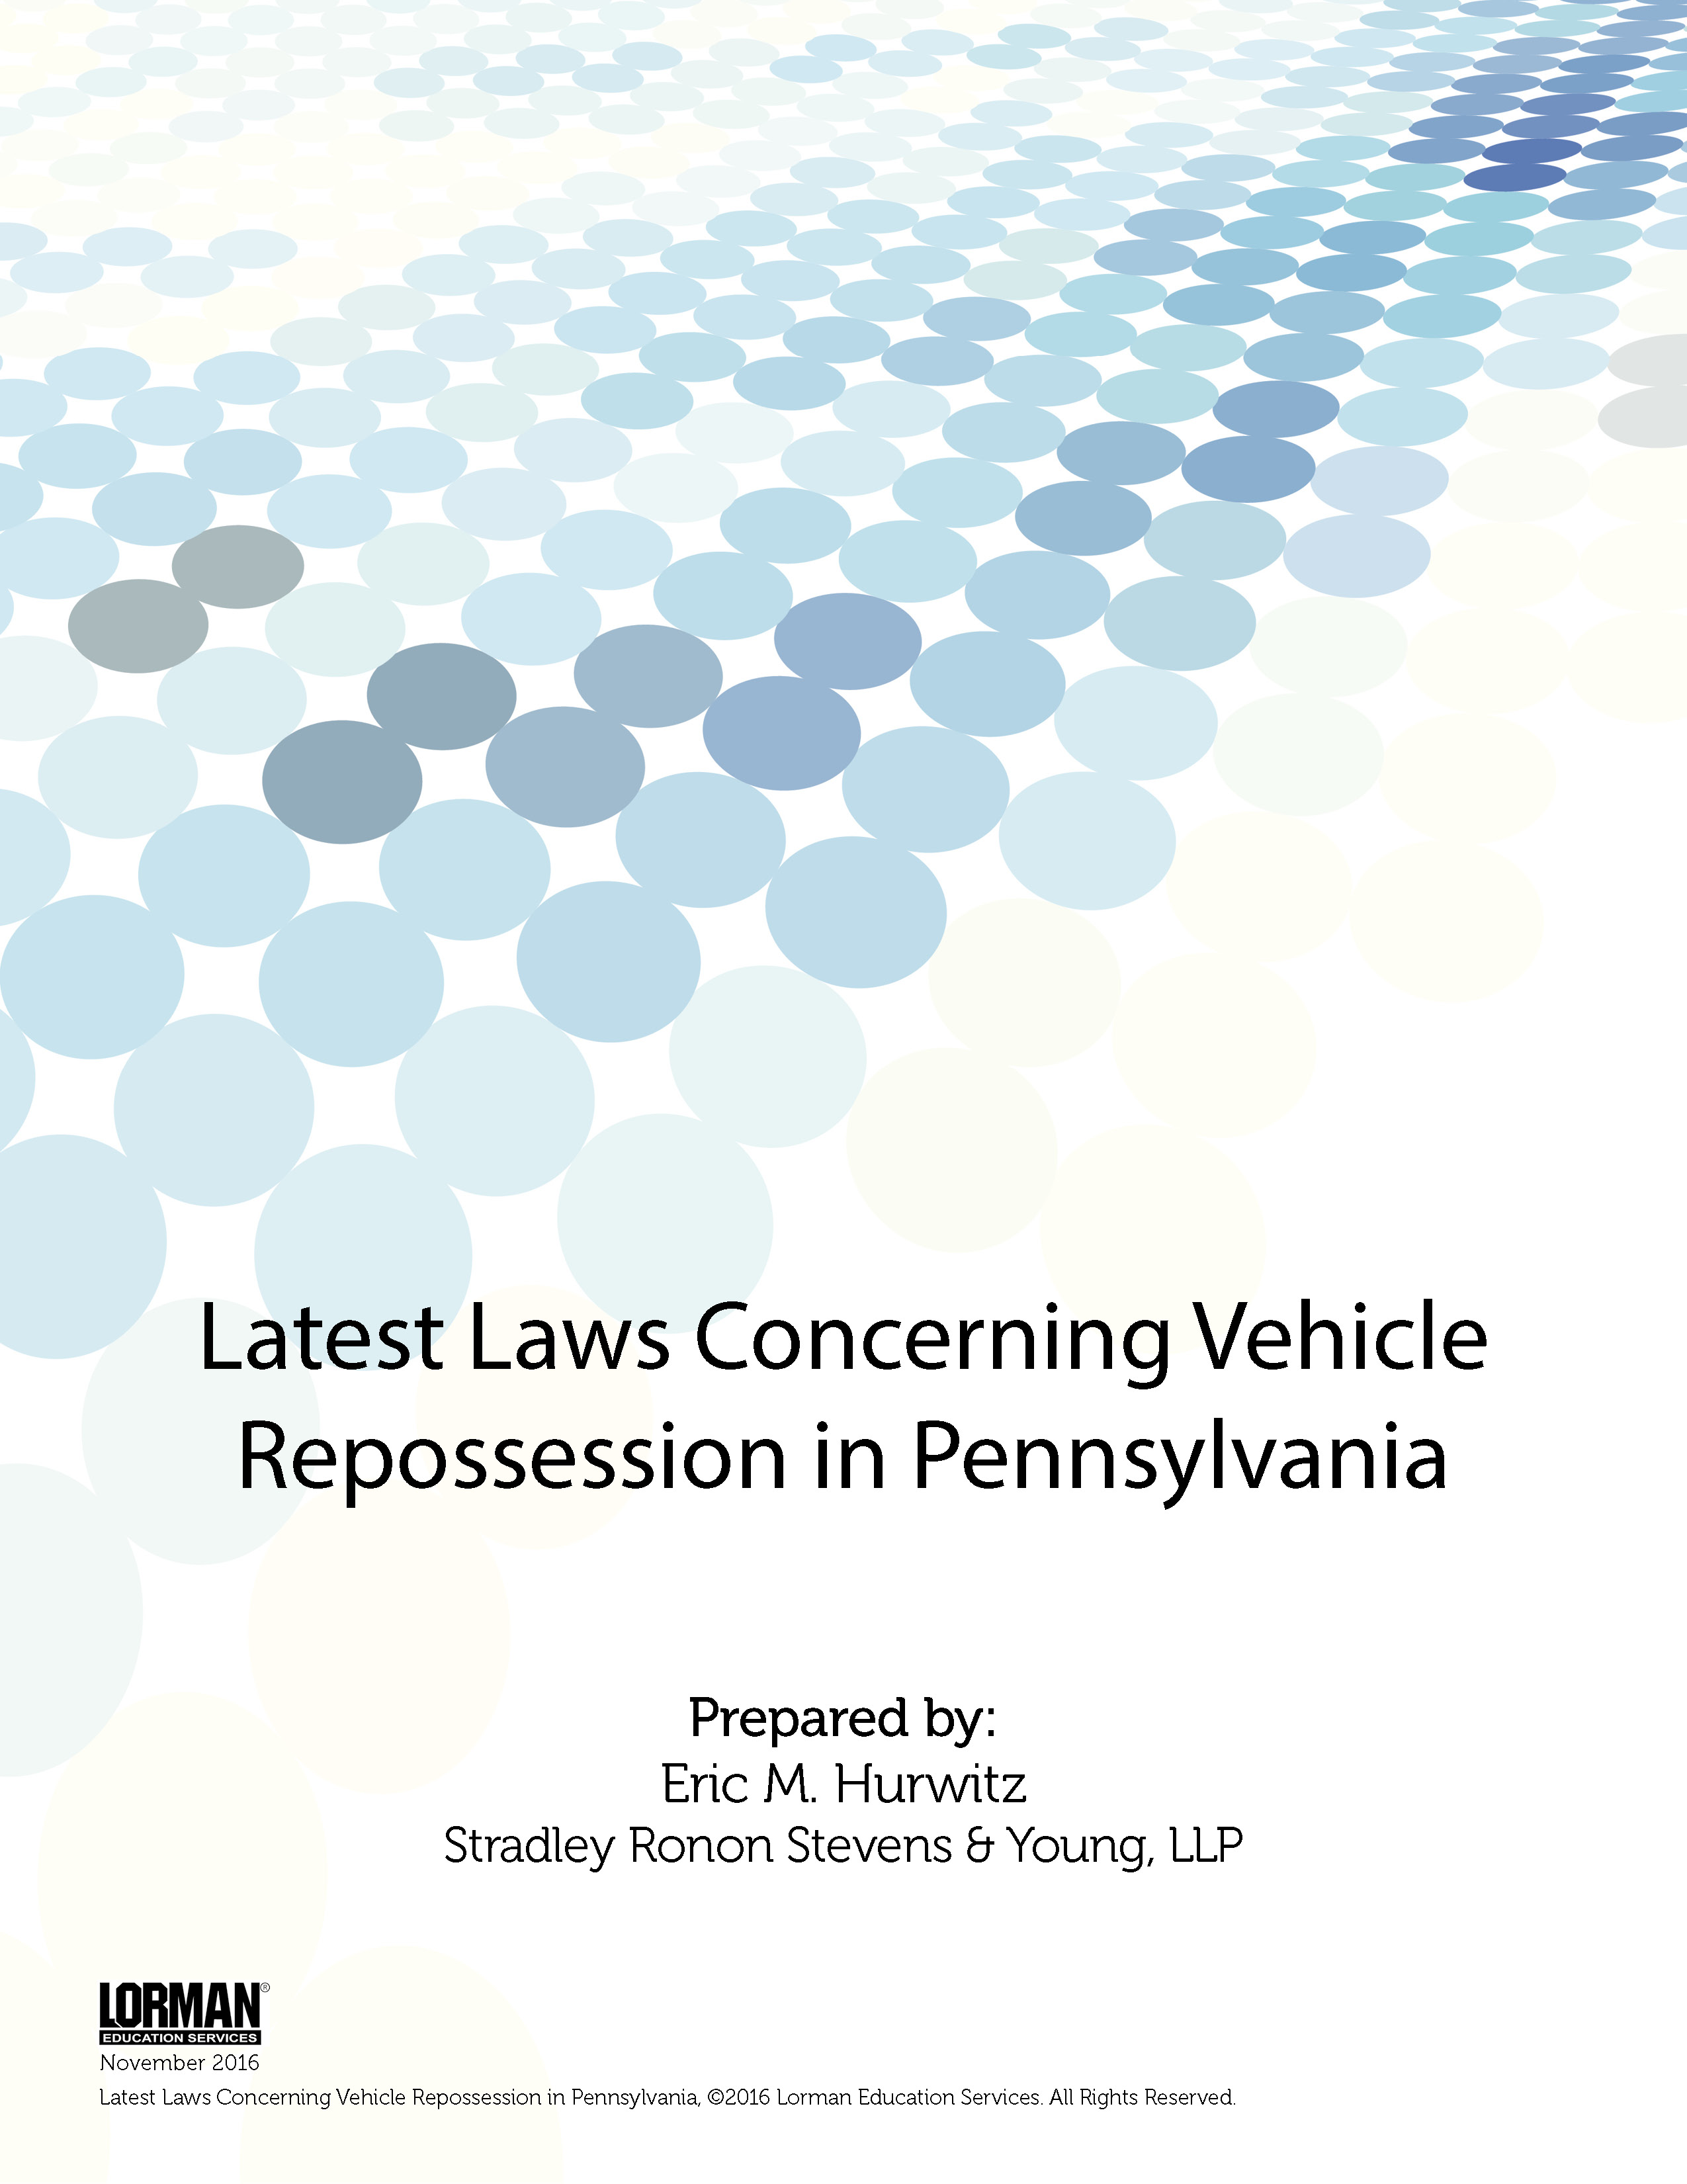 Latest Laws Concerning Vehicle Repossession in Pennsylvania